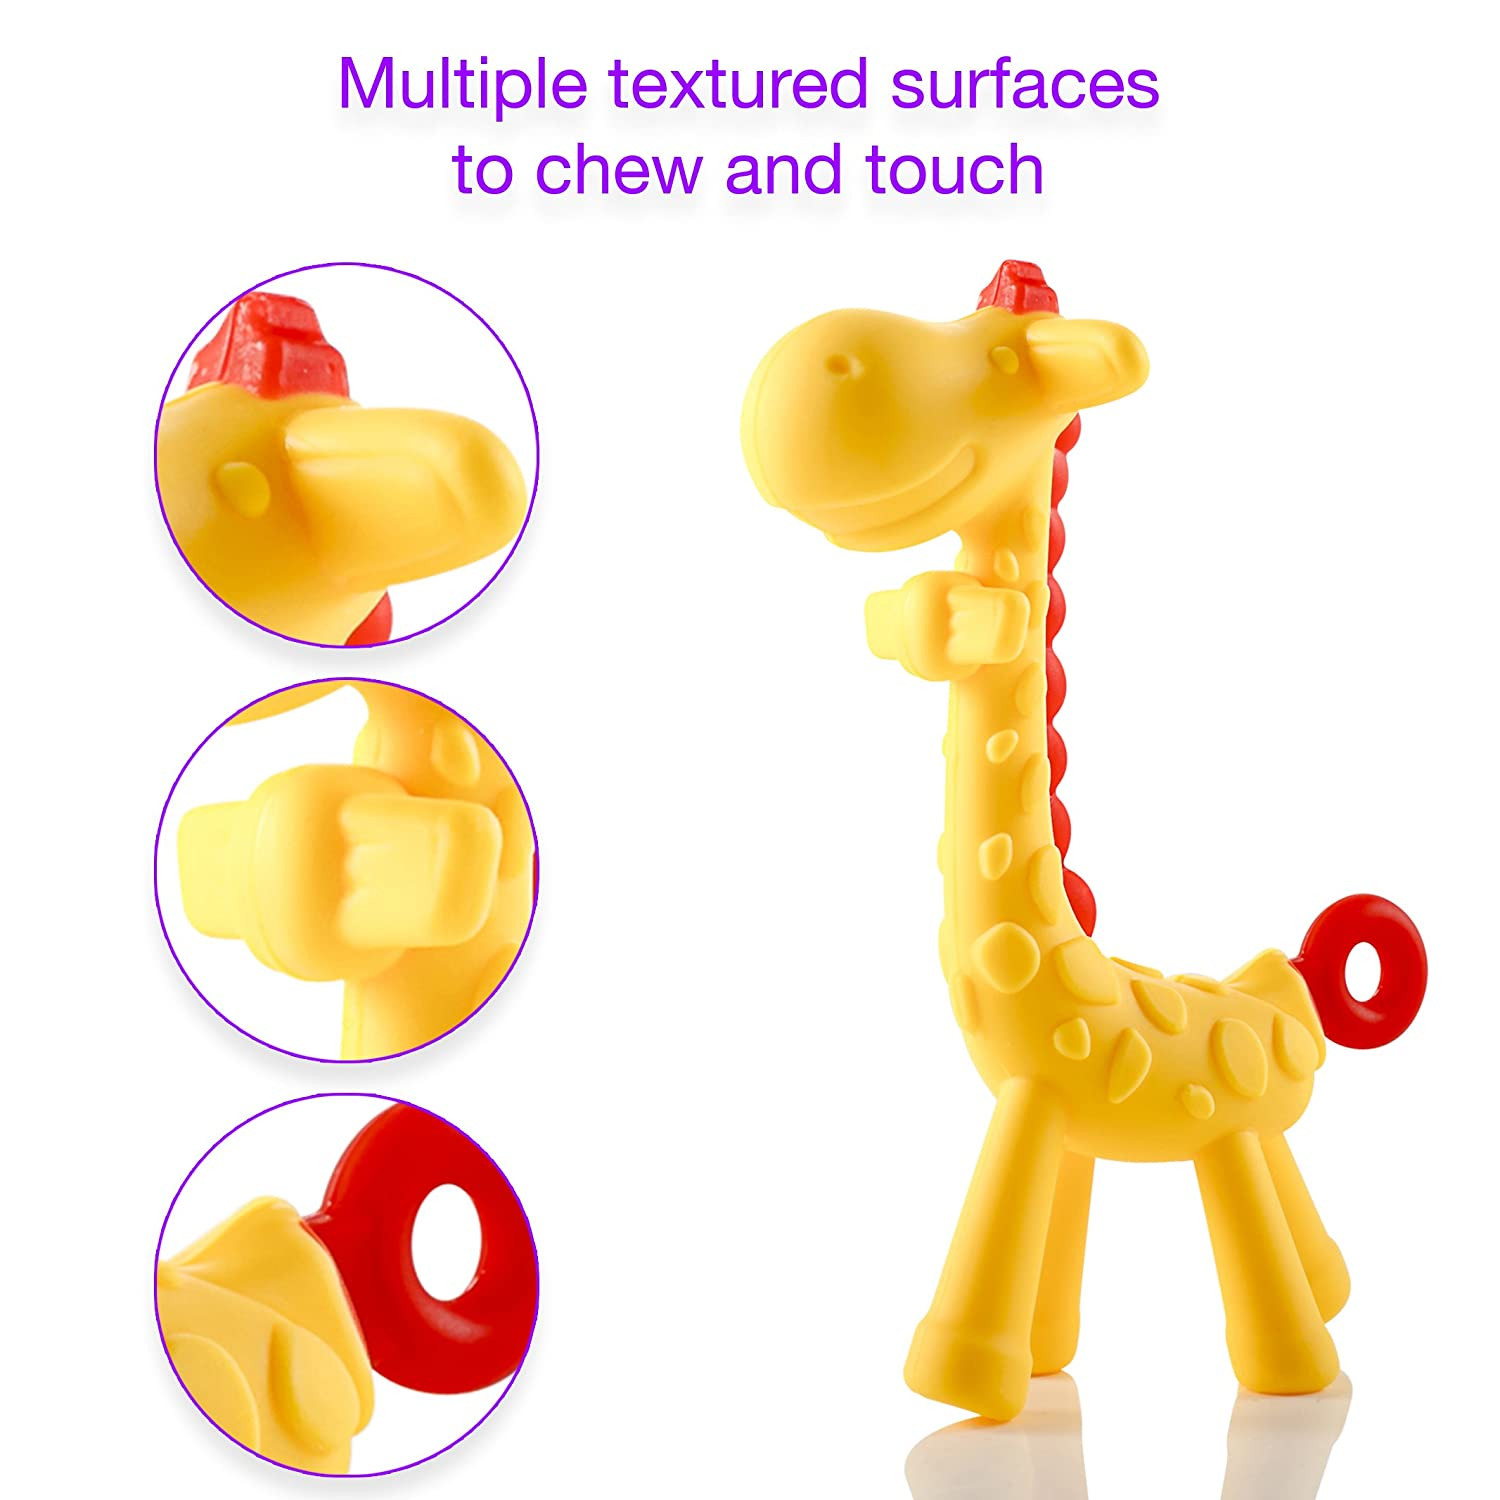 Natural /& Organic BPA-Free Silicone Cute Chew Toys for Boys Girls Textured Infant Teething Relief Giraffe Baby Teether Toy Babies Freezable and Dishwasher-Safe Newborn Toddlers